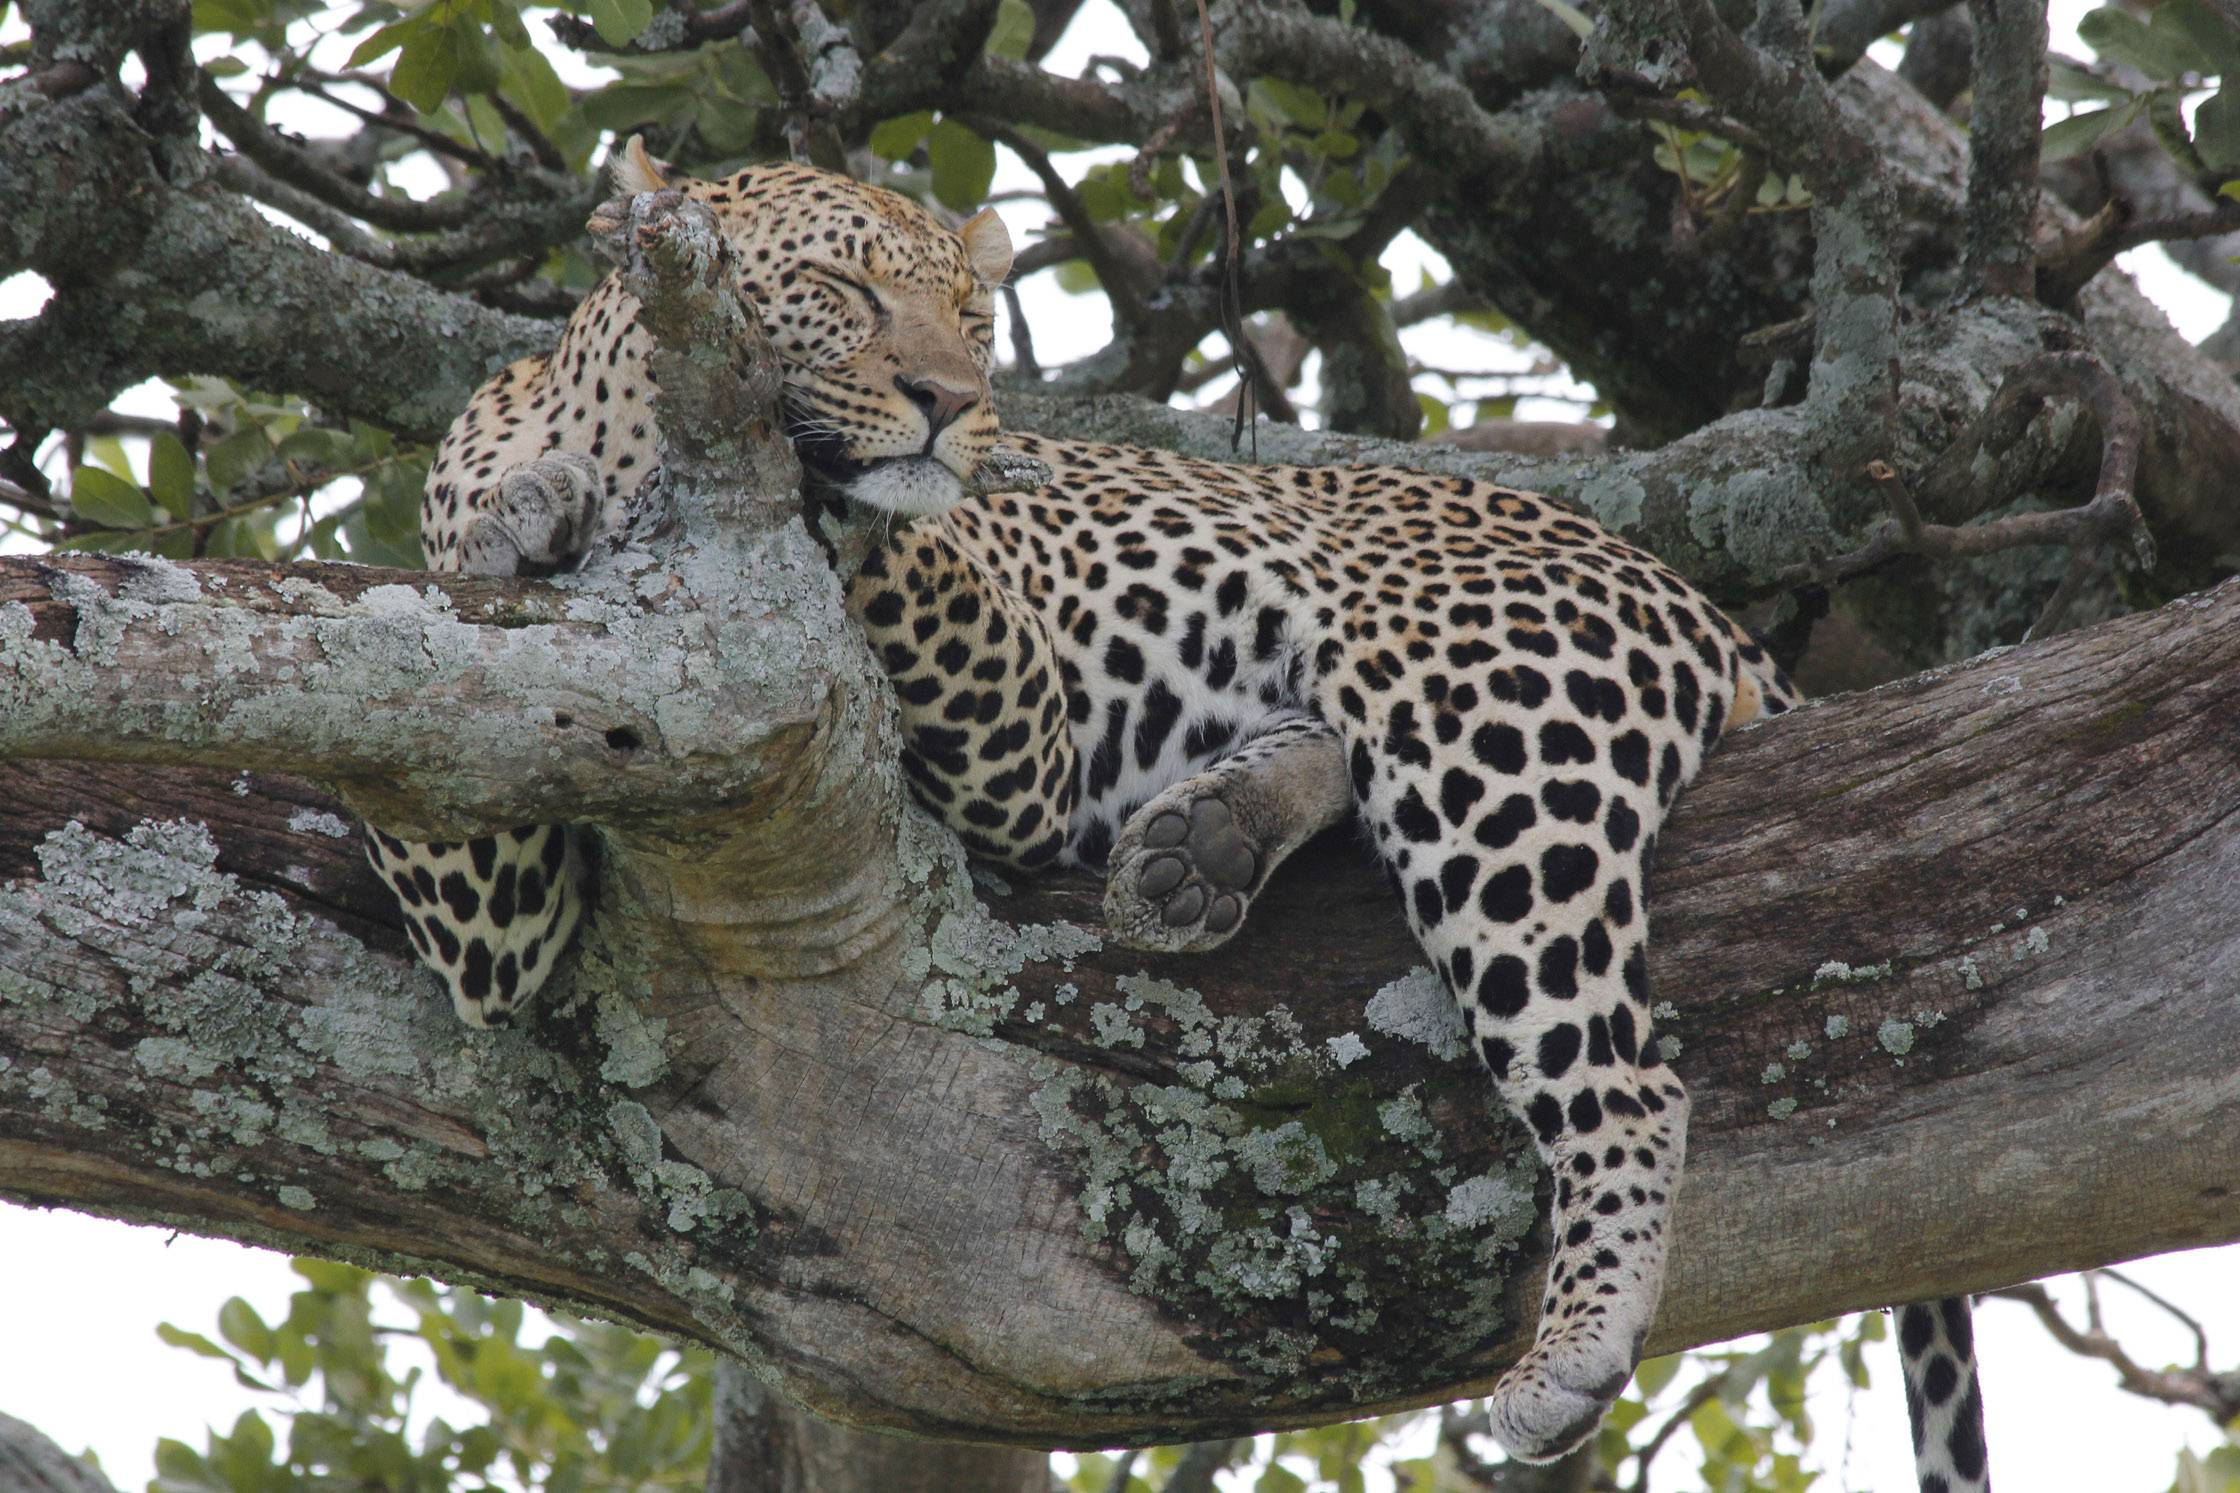 A leopard sleeps in a tree in Serengeti National Park, Tanzania, Africa this past January. Leopards spend most of their non-hunting time resting in trees, sometimes with their kill.